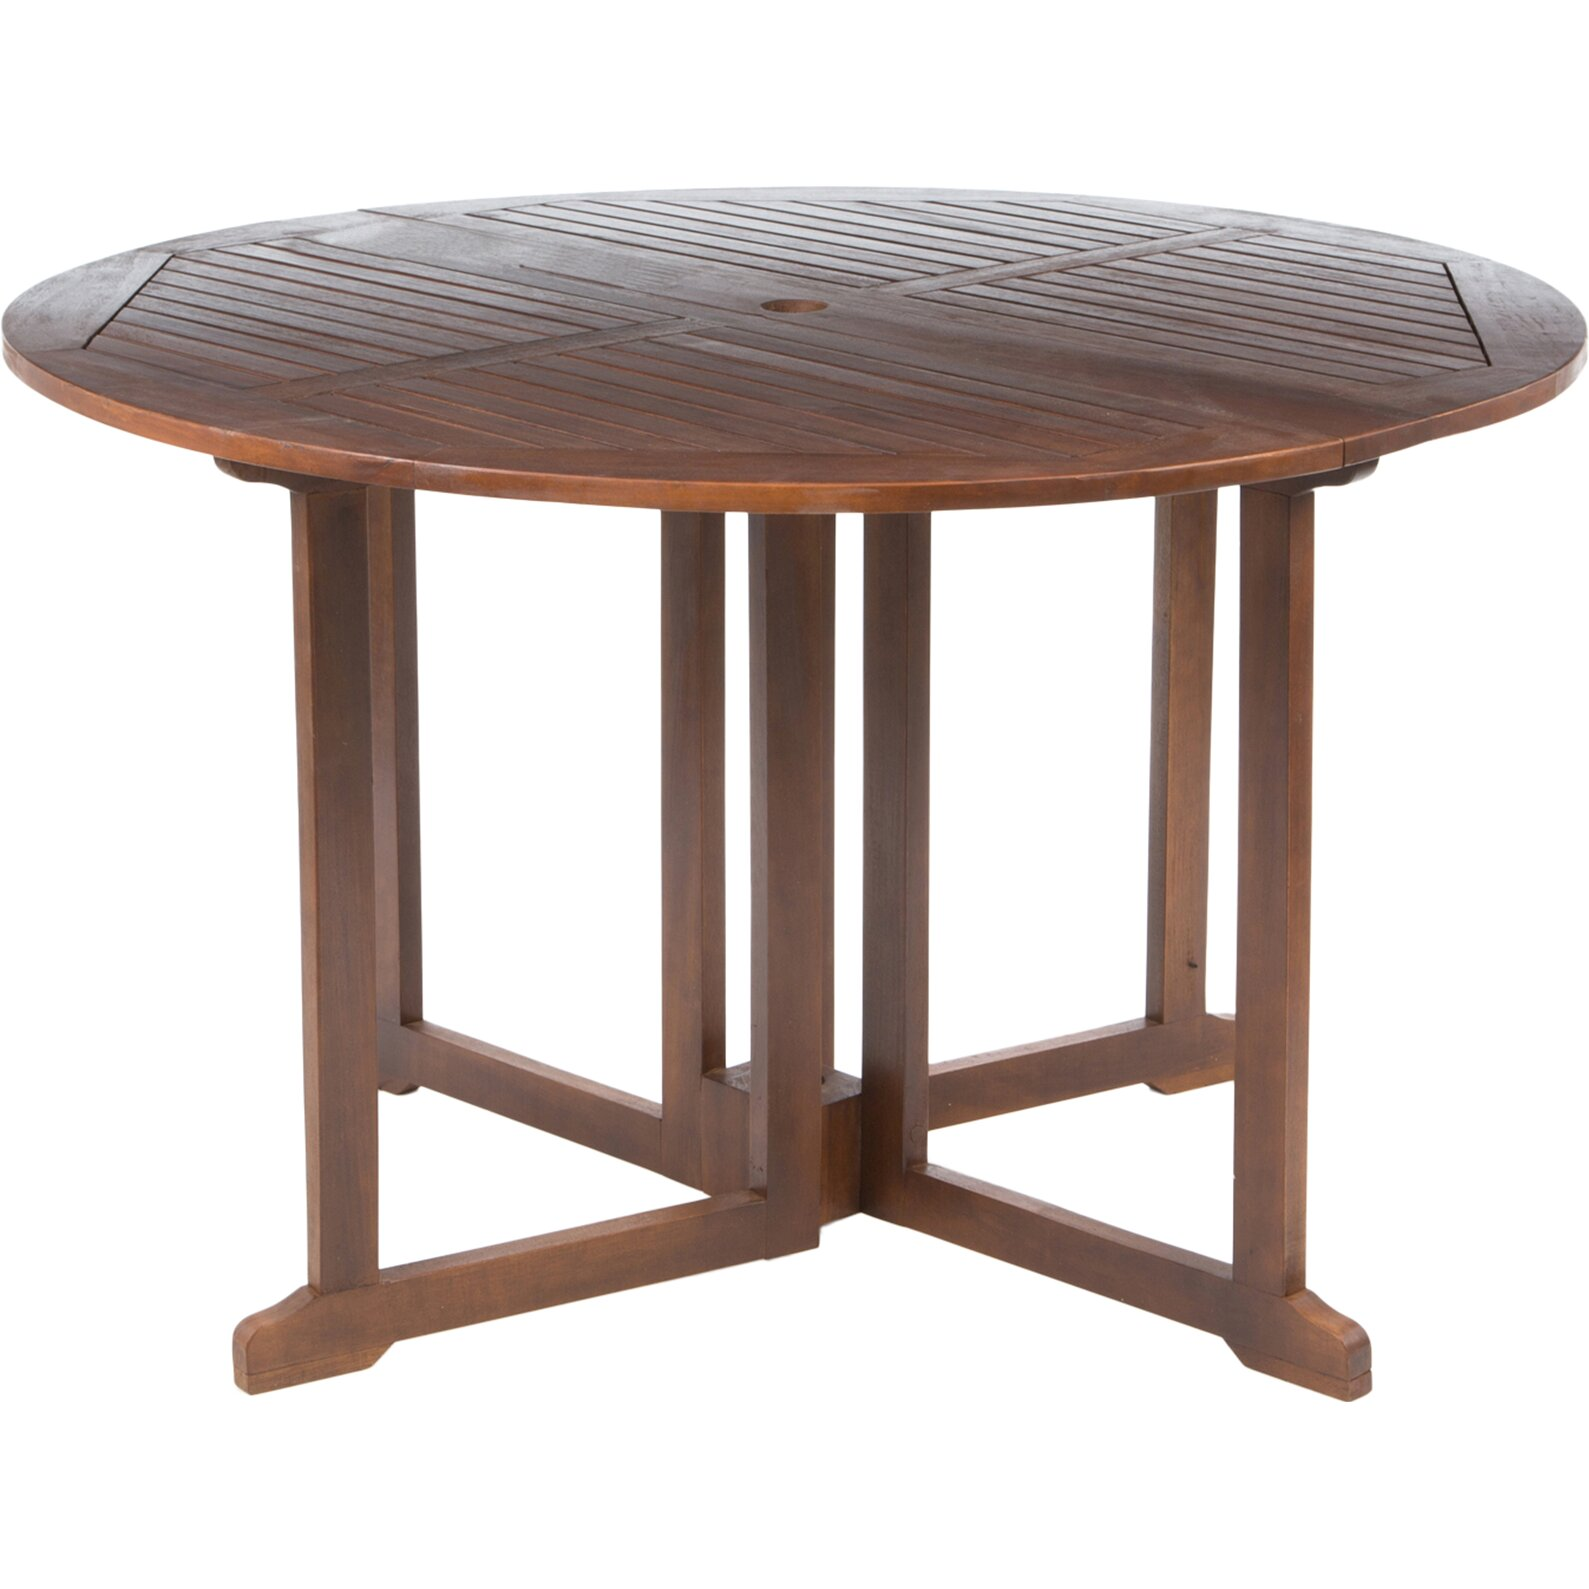 loon peak dover folding dining table  reviews  wayfair, Dining tables